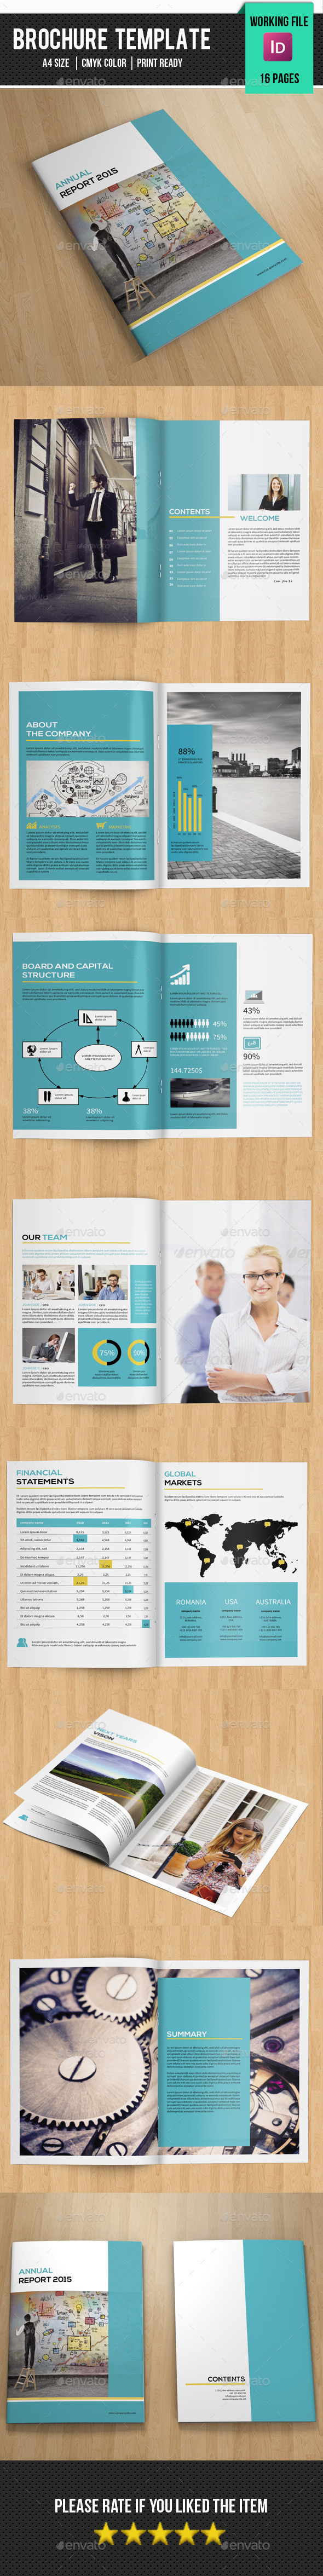 Annual Report Brochure-V272 - Corporate Brochures